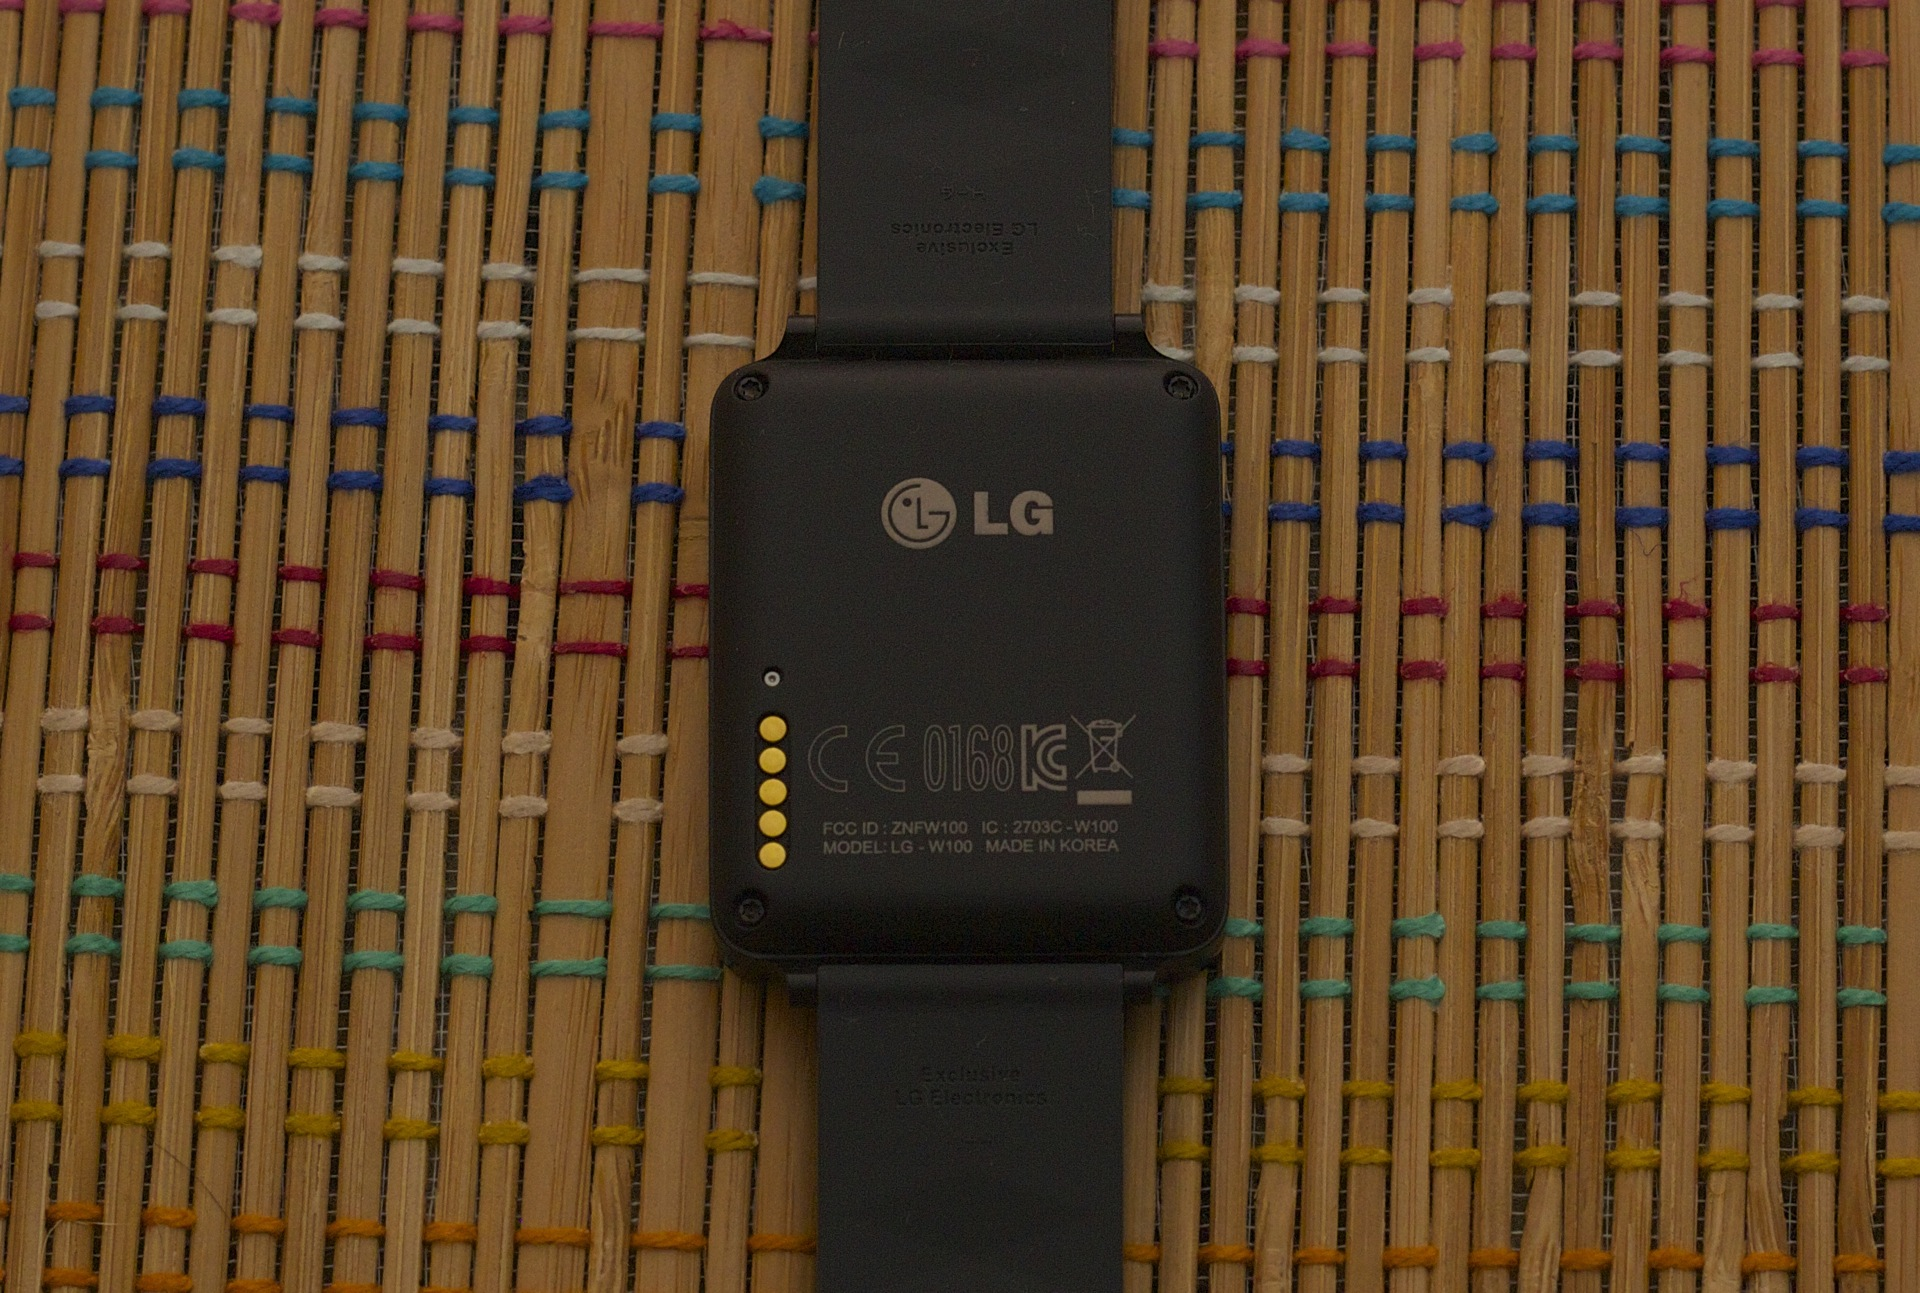 The G Watch just has pogo pins. Its completely flat back is less comfortable against one's wrist.